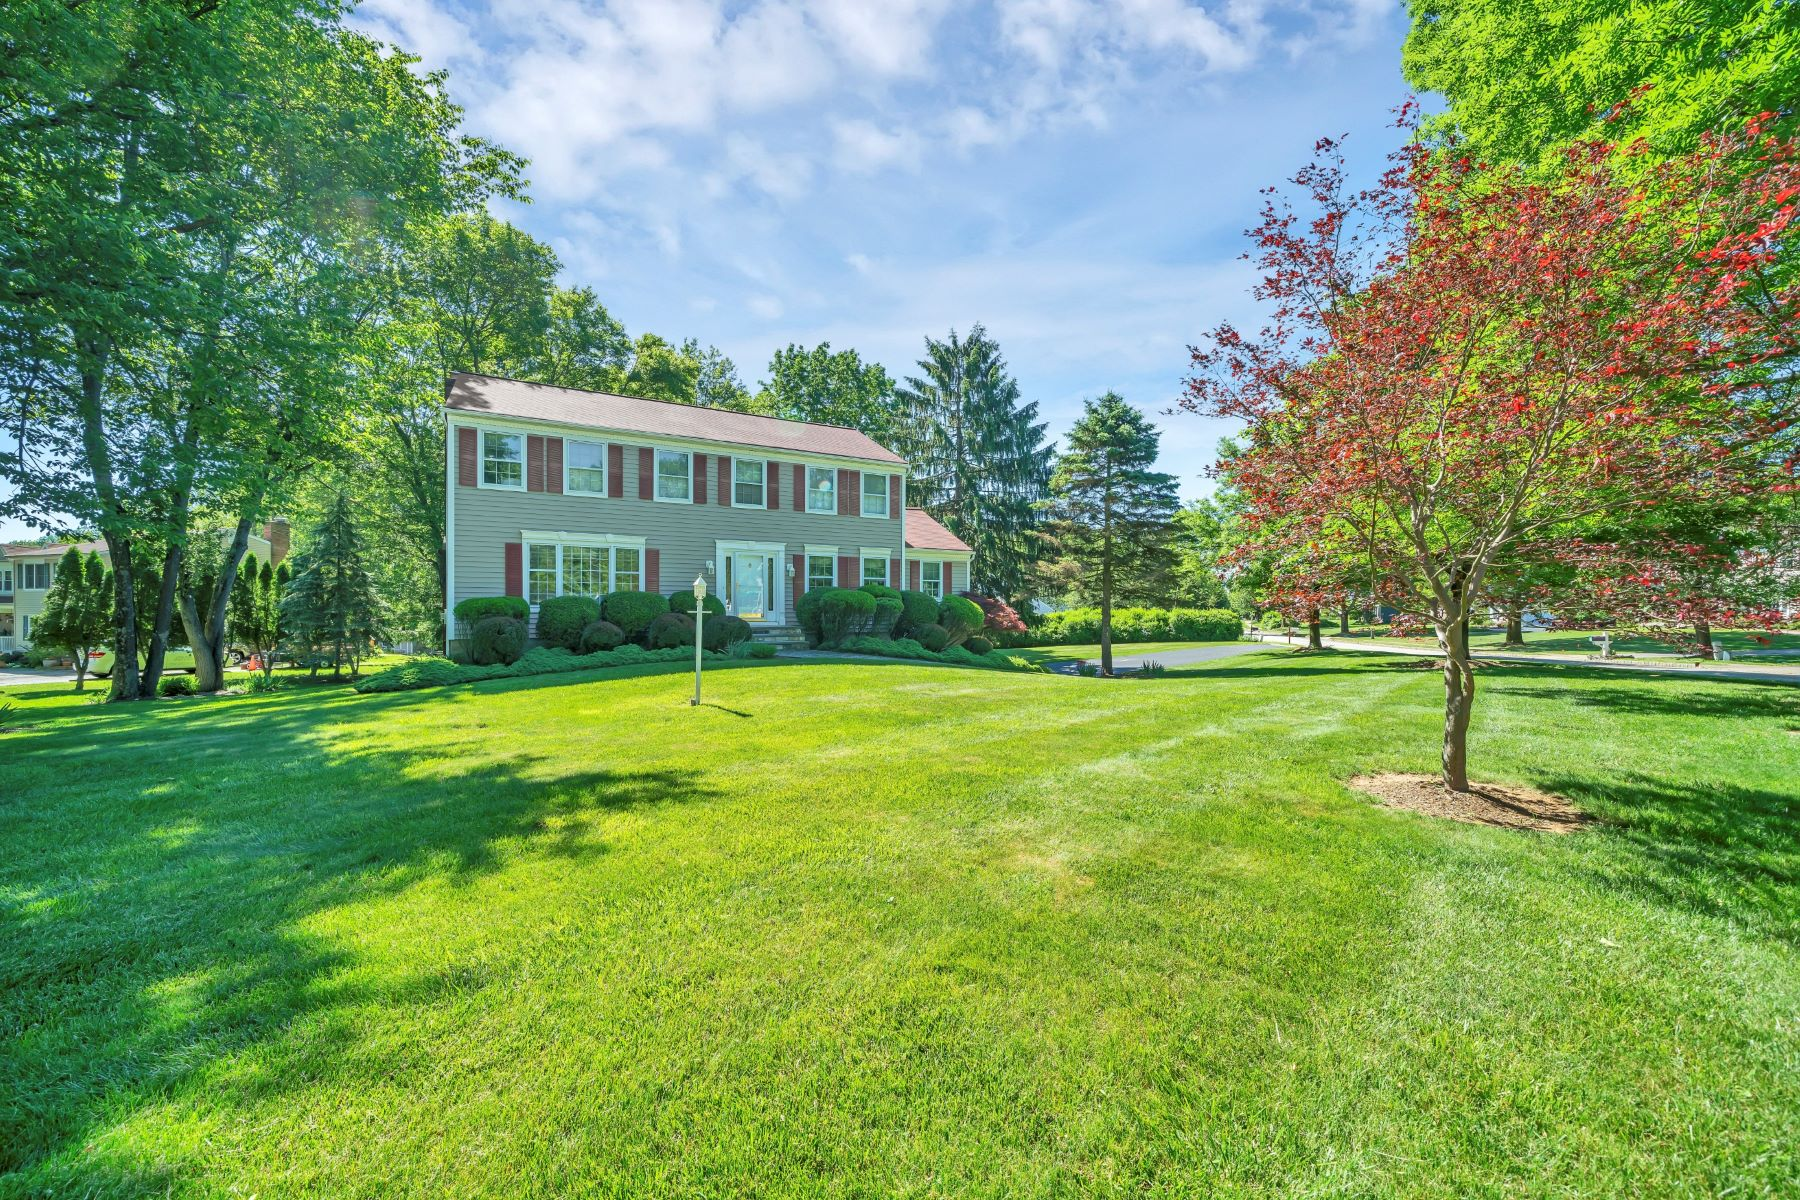 Single Family Homes for Active at Pride in Ownership 1 Walnut Drive Long Valley, New Jersey 07853 United States